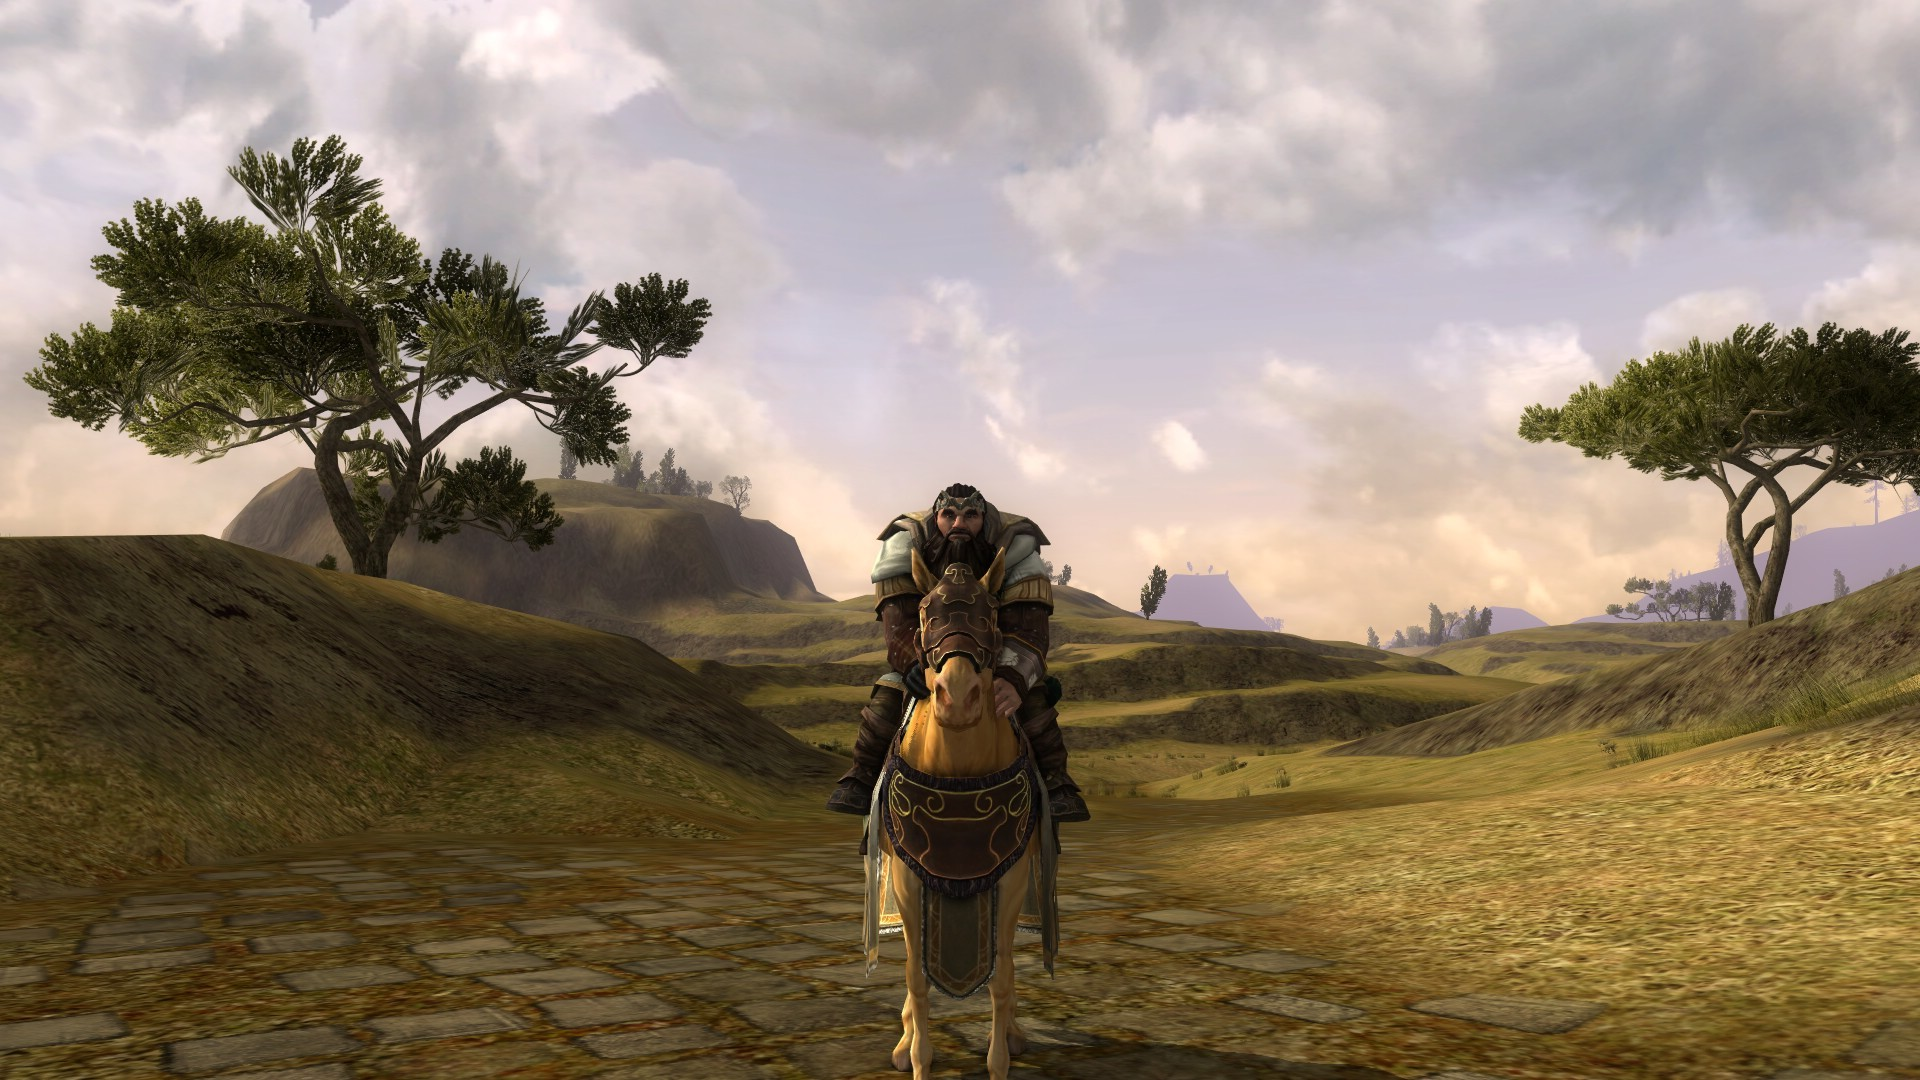 Lord of the Rings Online - Are you ready to ride to Isengard?!?!